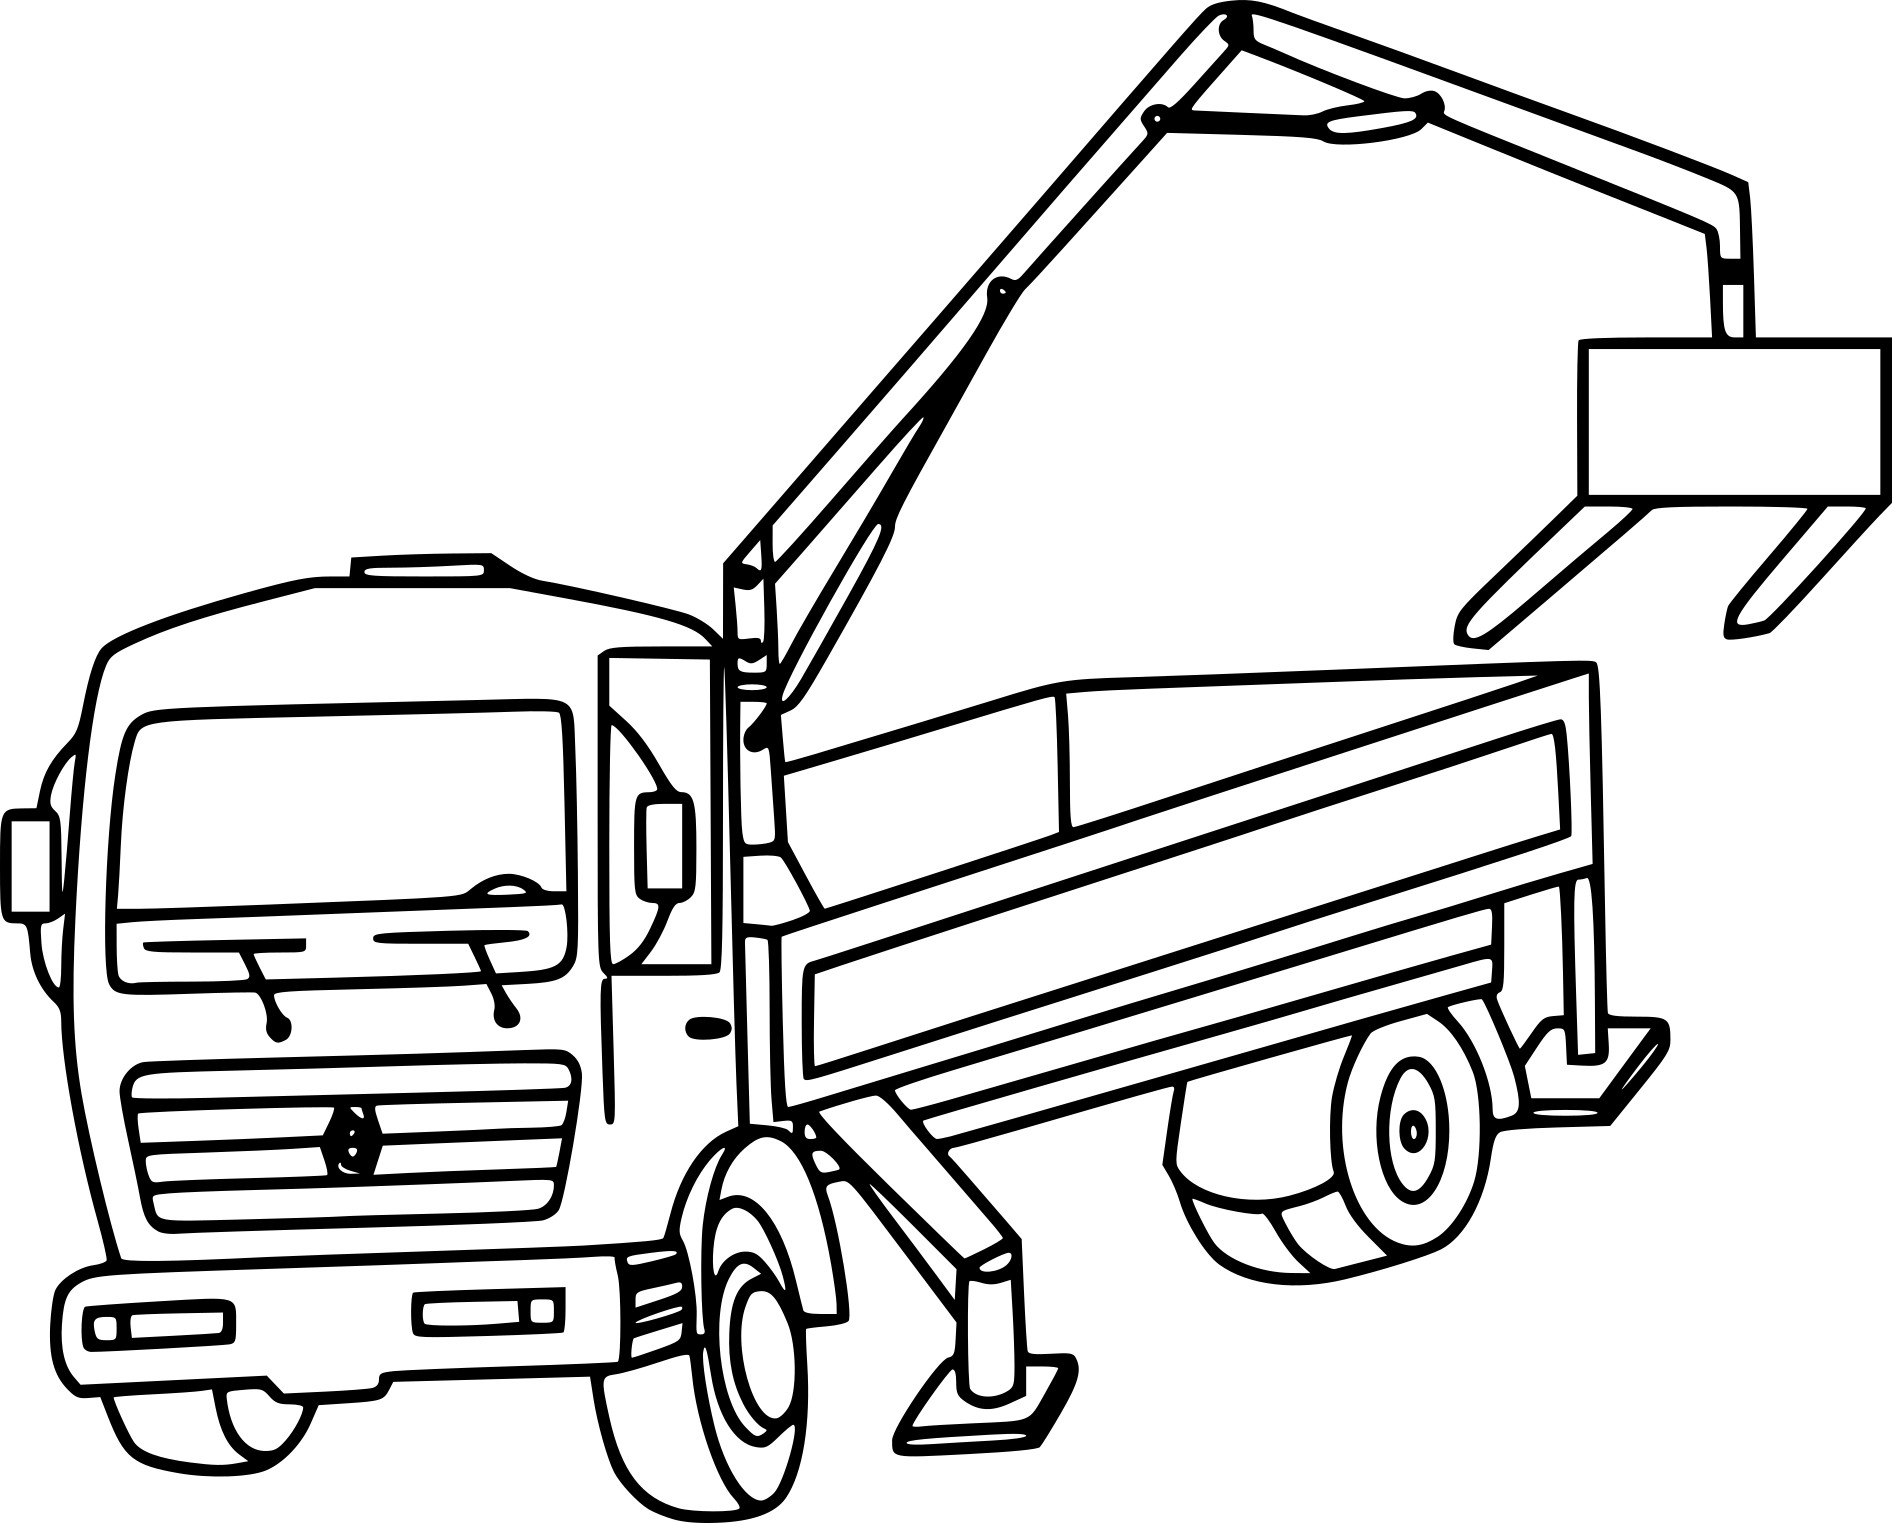 John Deere Harvester Coloring Pages Coloring Pages